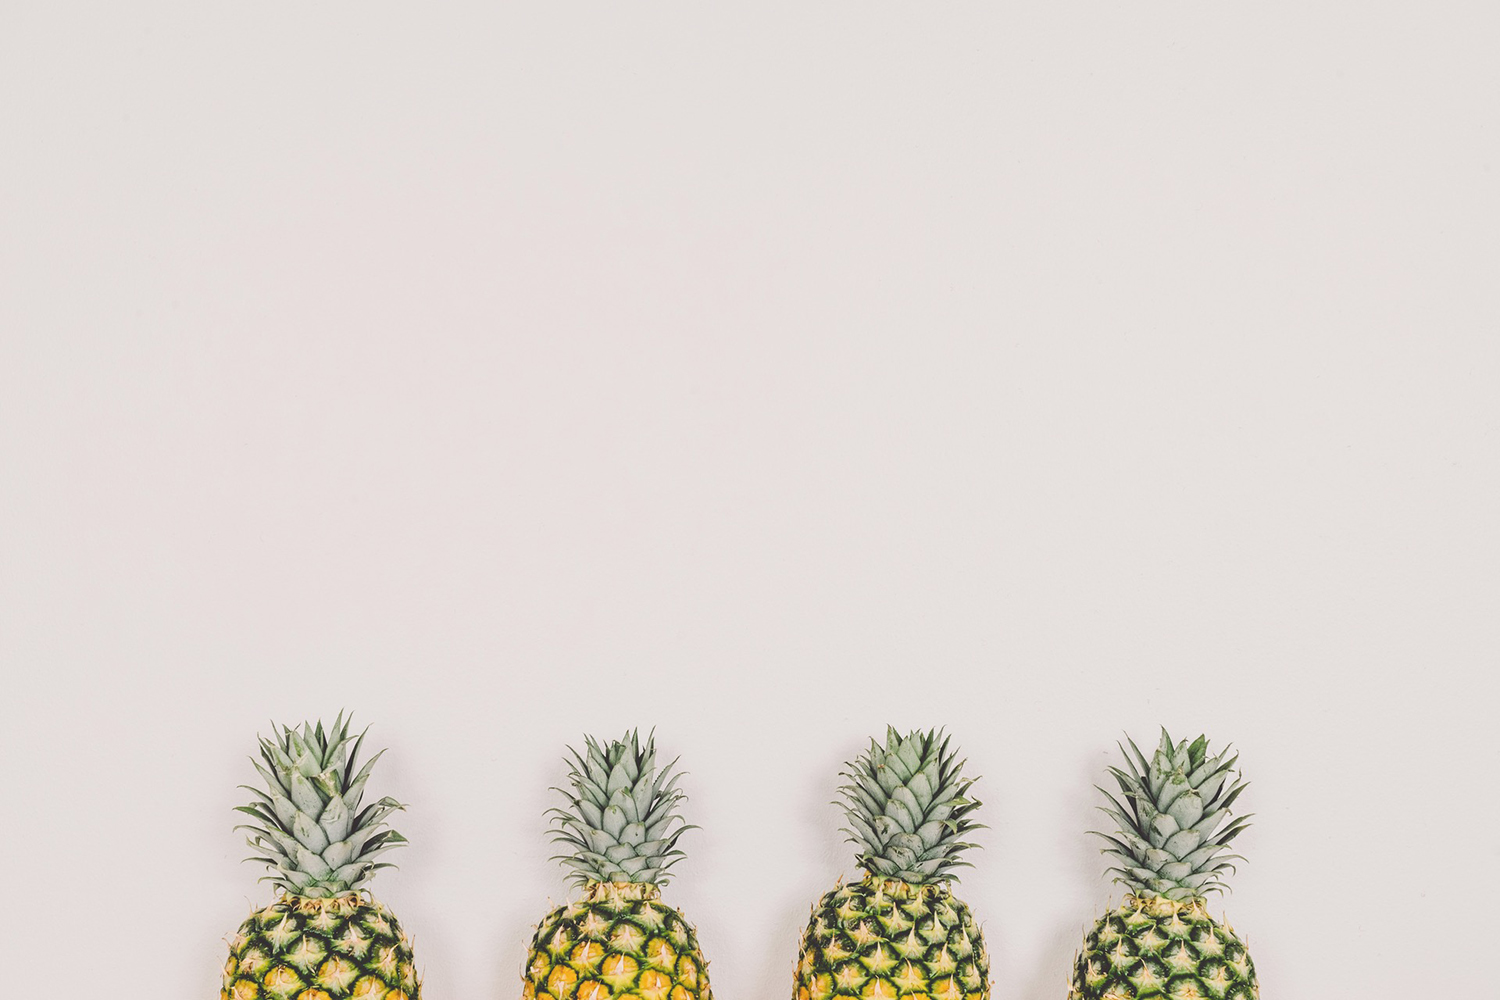 Four Pineapples on Isolated Background